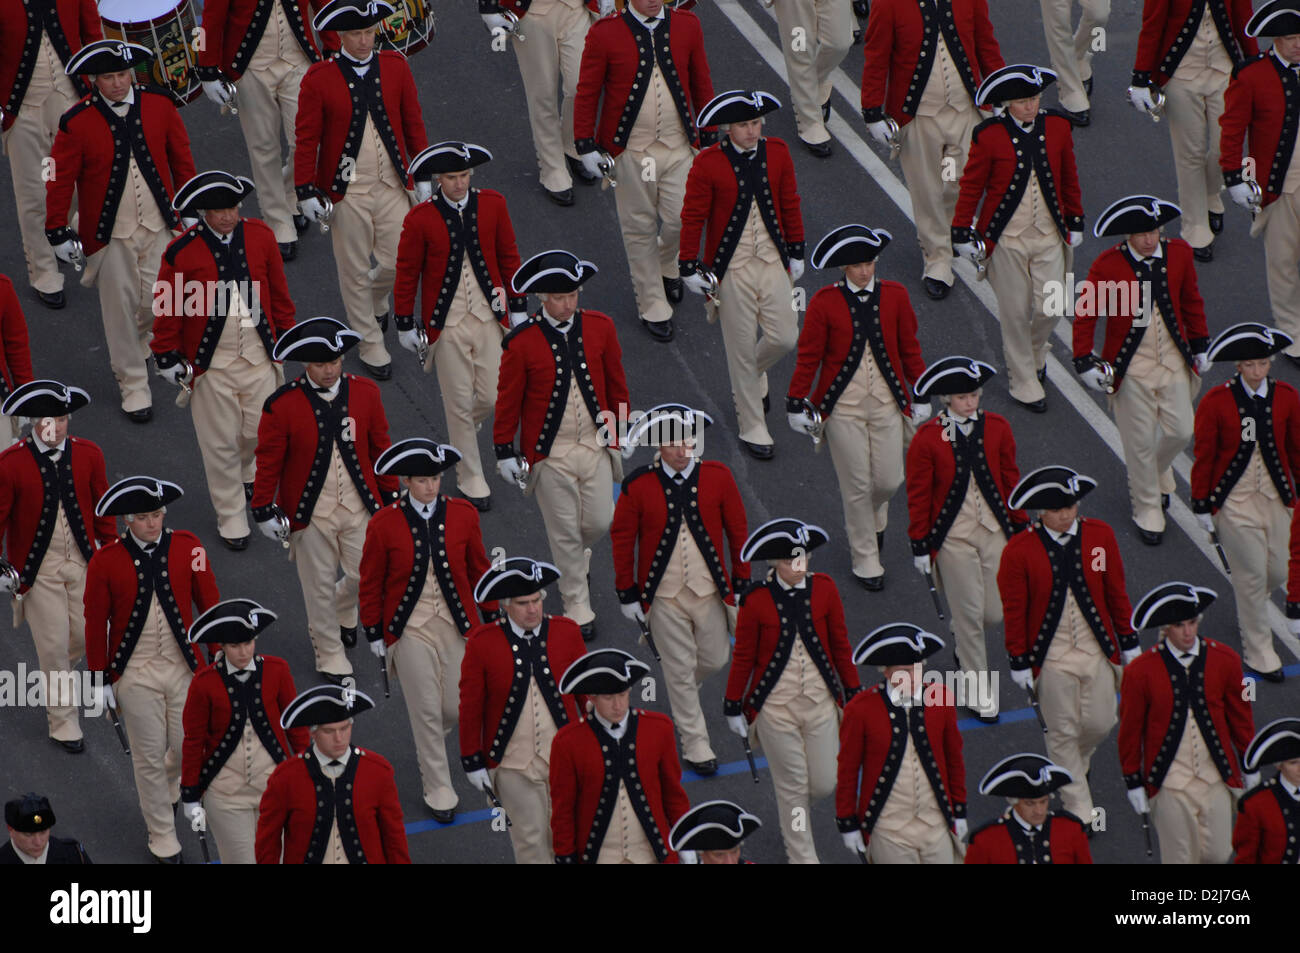 The US Army Old Guard Fife and Drum Corps marches down Pennsylvania Avenue during the first Obama 2009 presidential - Stock Image